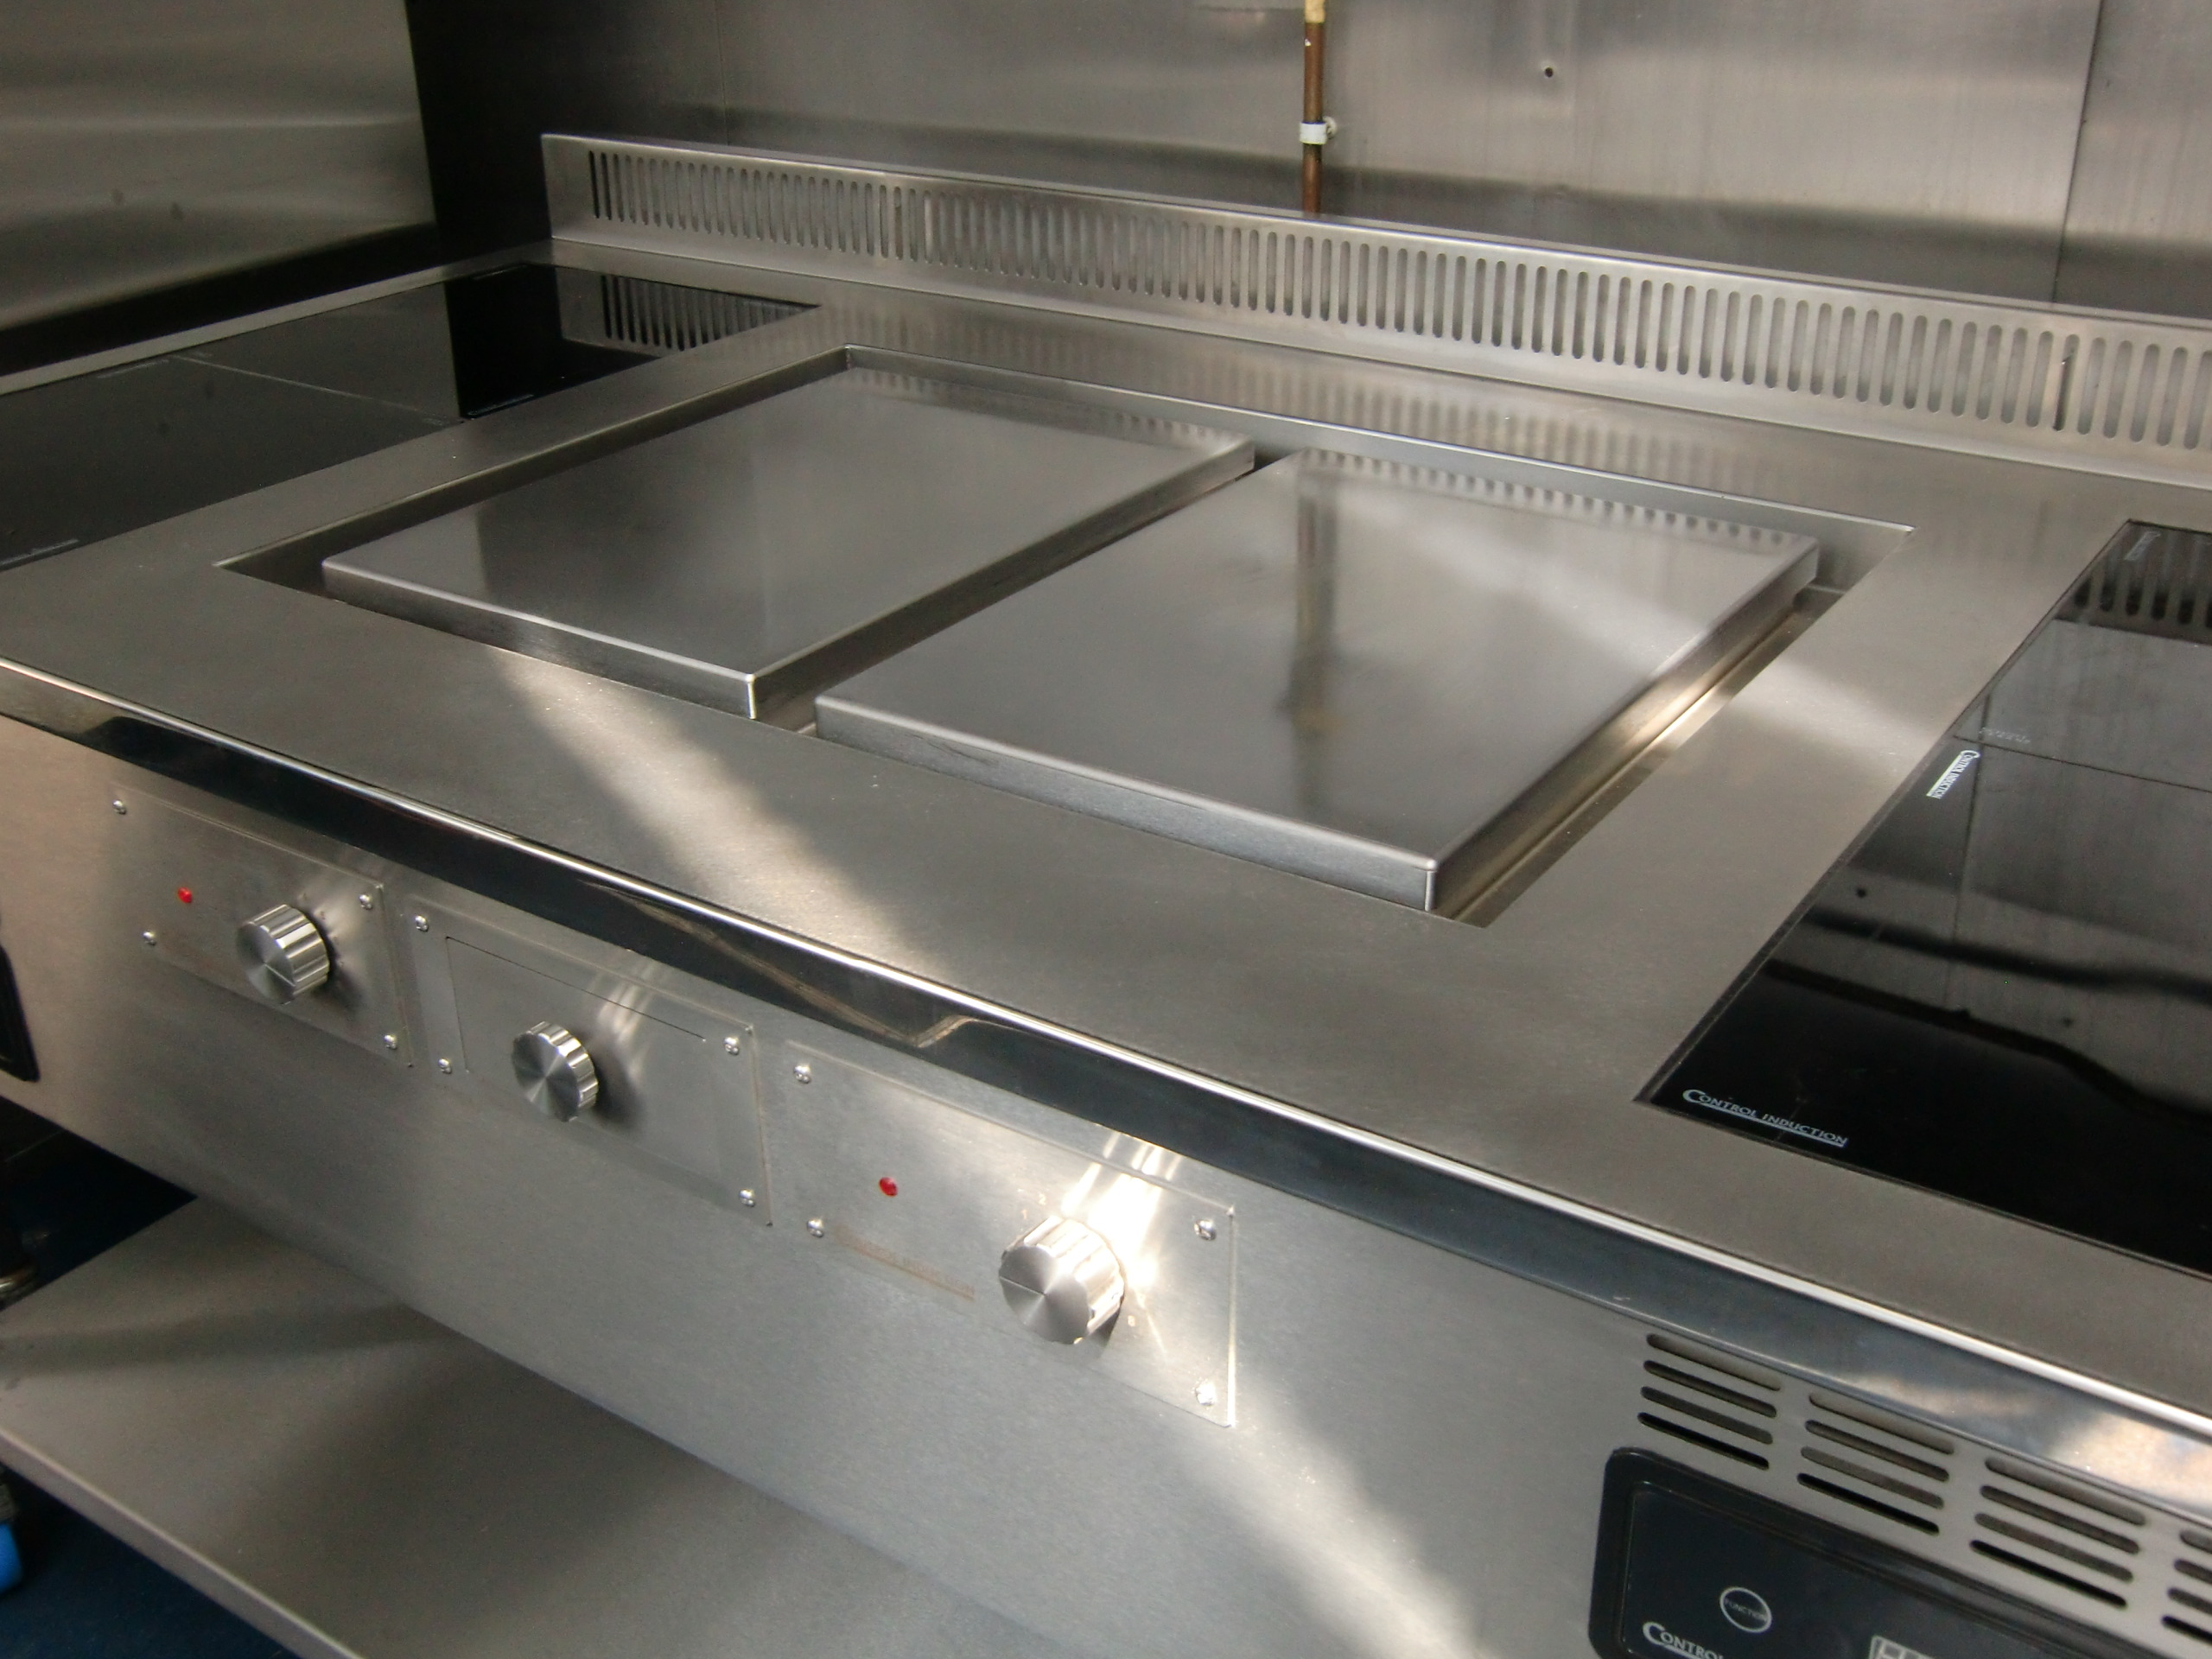 Bespoke induction suite with Double plancha